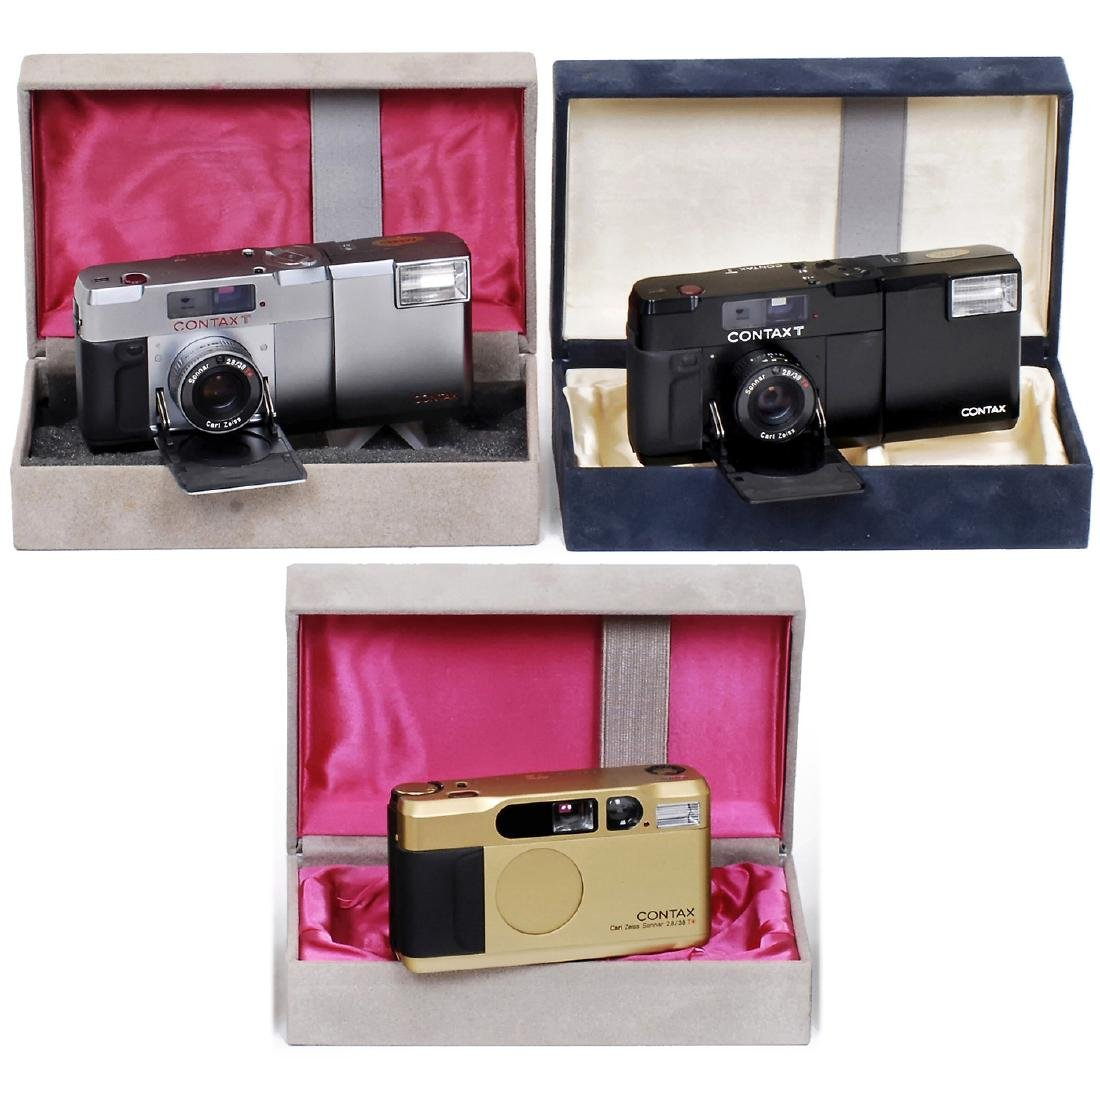 Contax T2 (Titanium Gold) and 2 Contax T Cameras